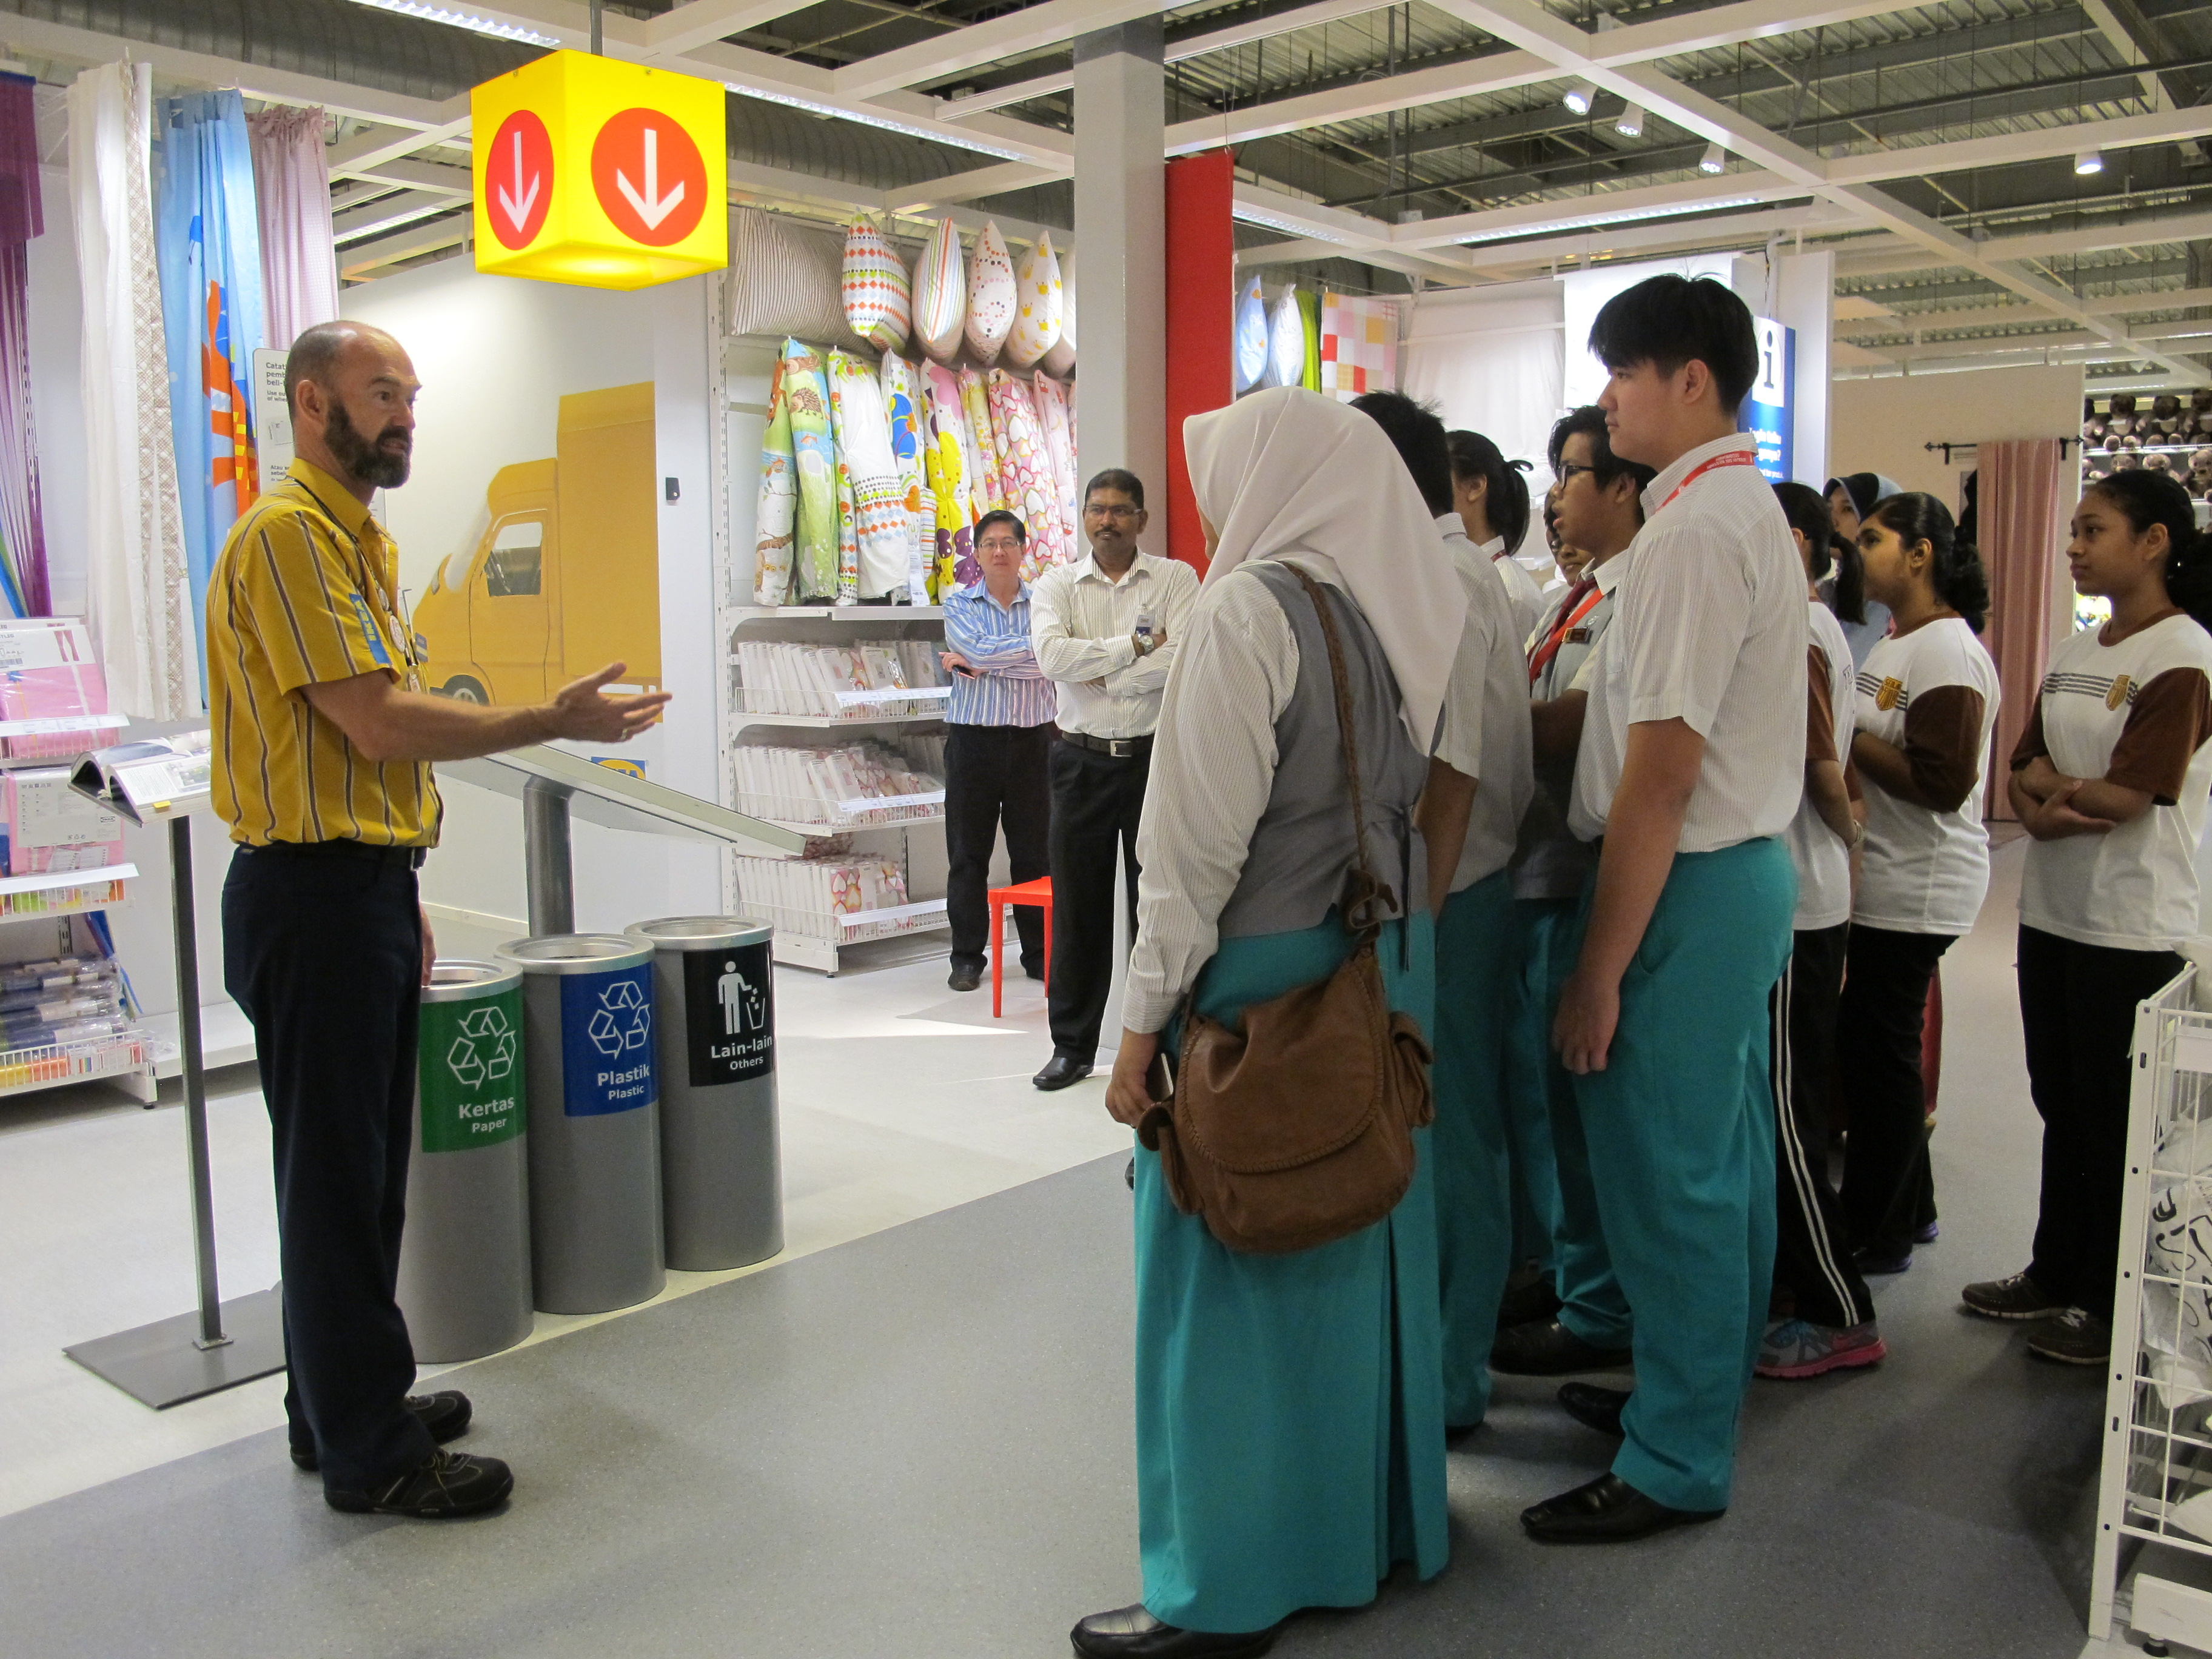 wwf malaysia join hands with ikea malaysia for eco schools programme wwf malaysia. Black Bedroom Furniture Sets. Home Design Ideas